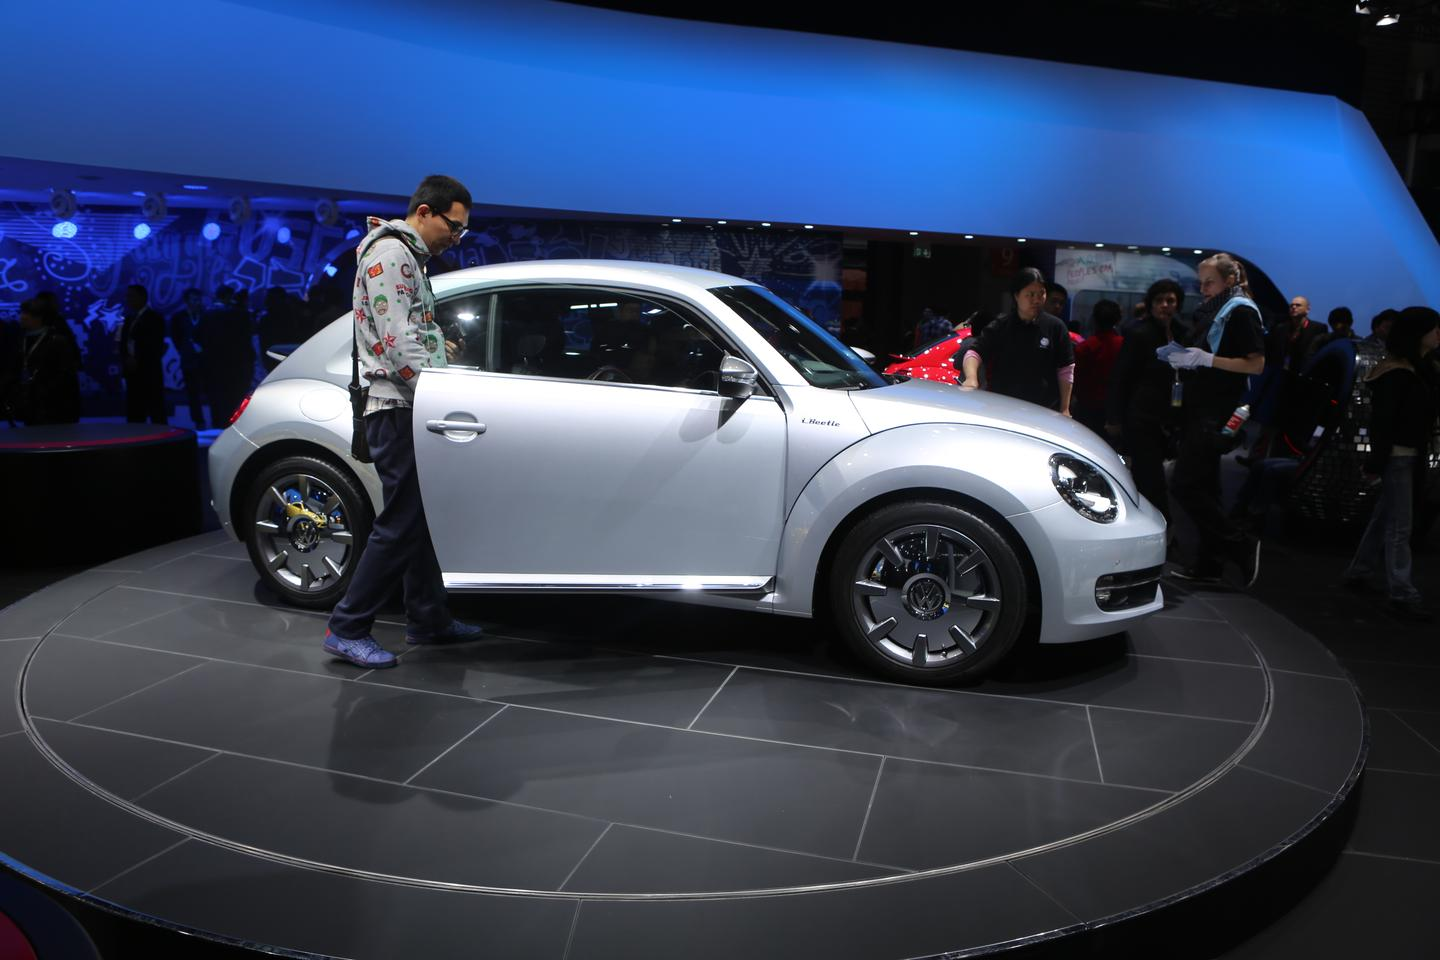 The Volkswagen iBeetle made its debut at the Shanghi Auto Show